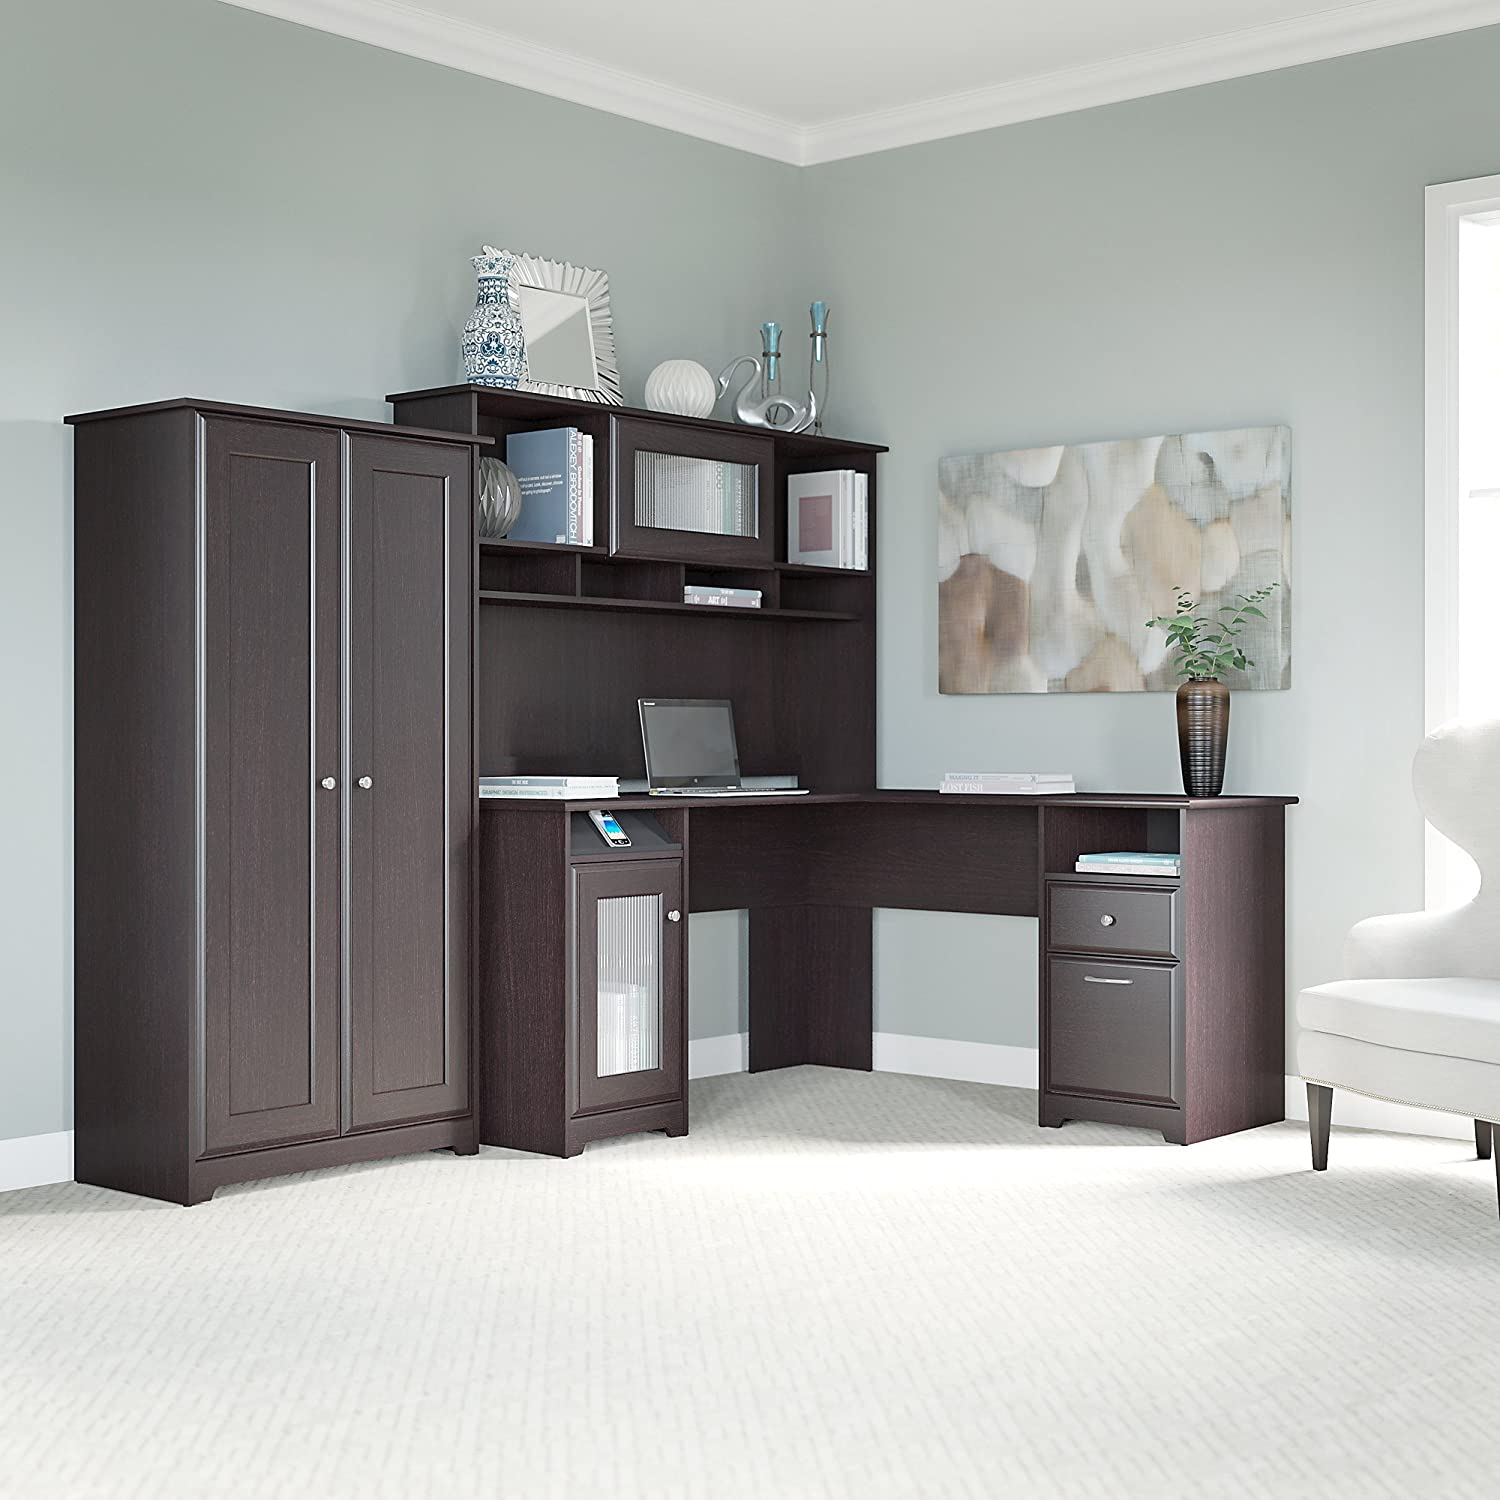 Cabot L Shaped Desk, Hutch, and Tall Storage Cabinet with Doors